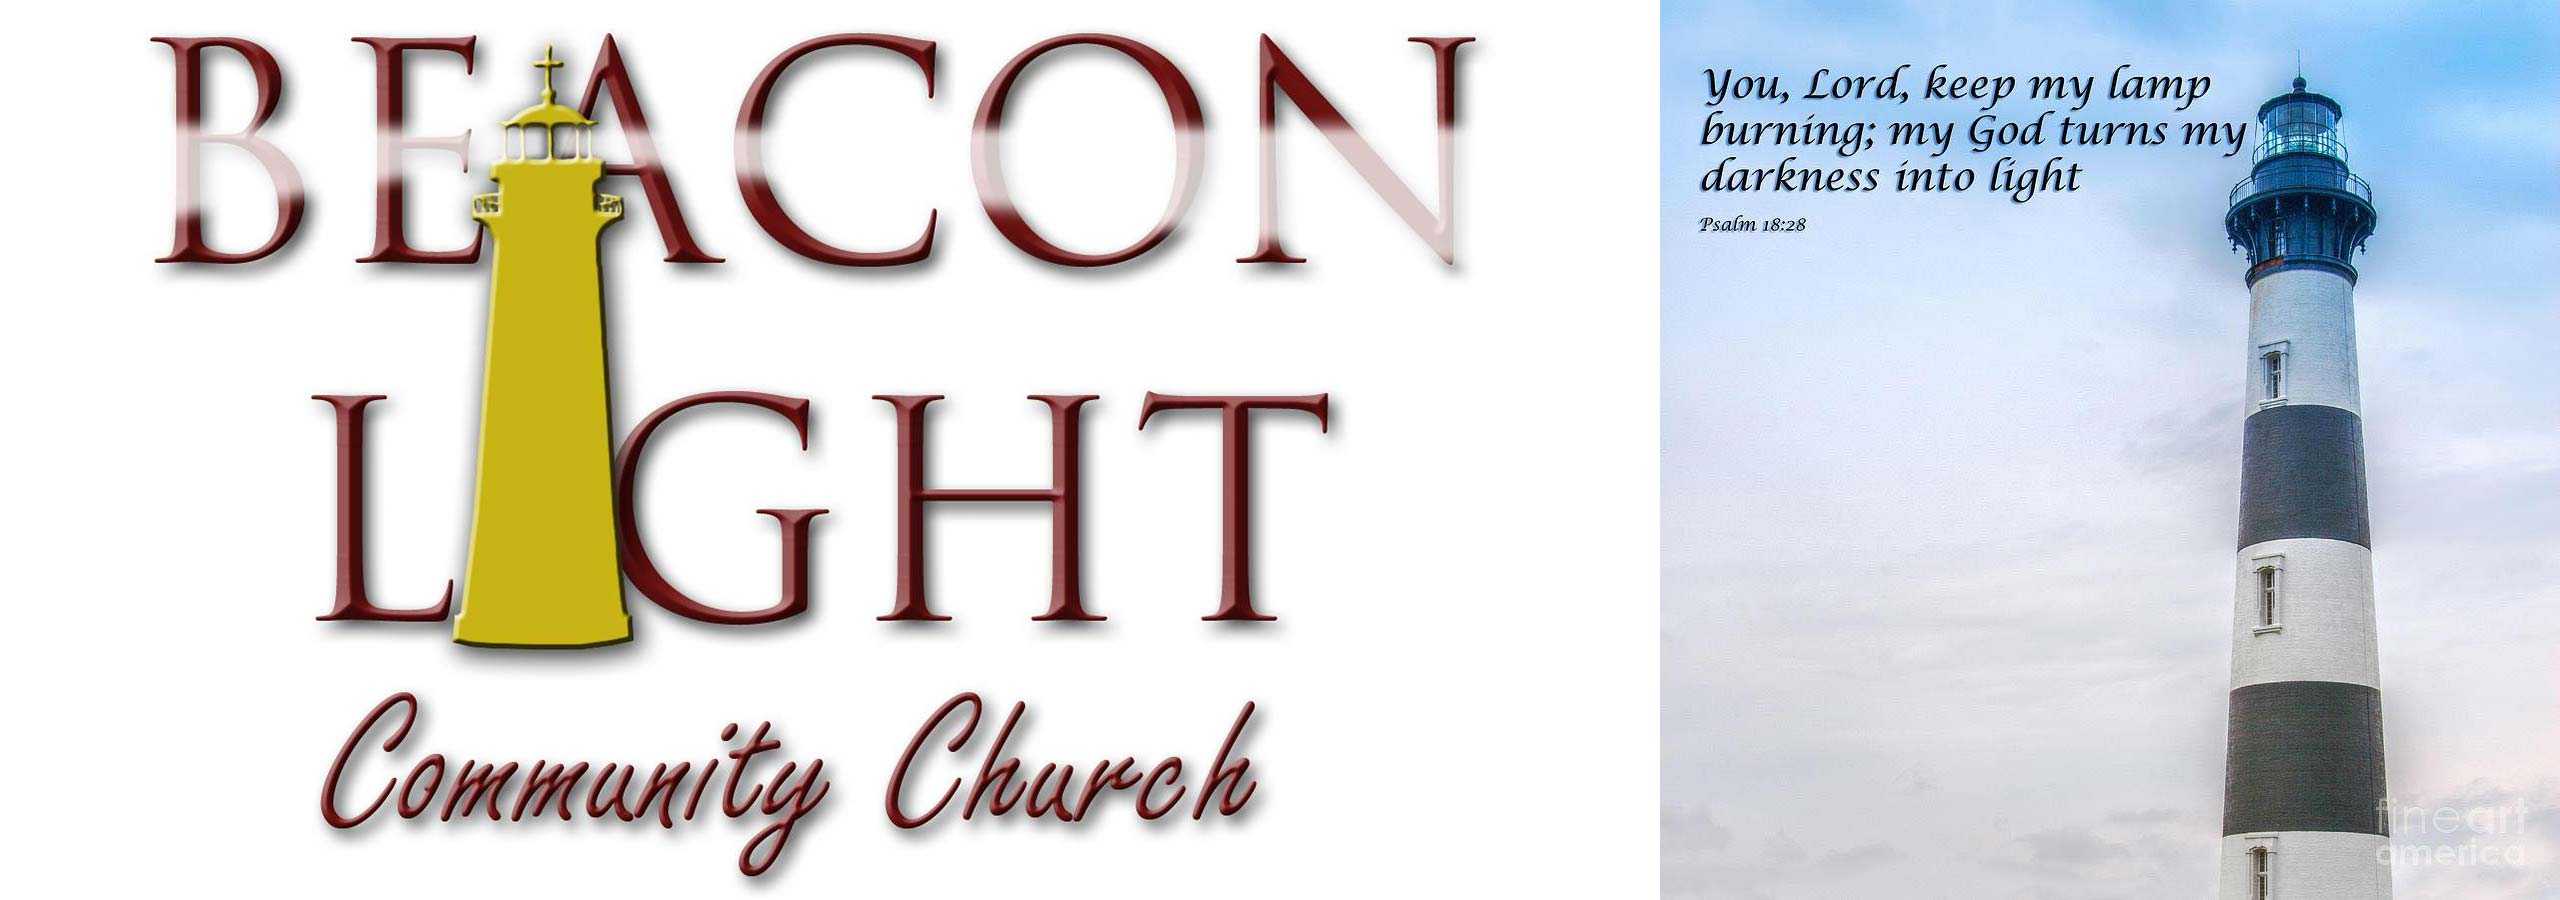 Beacon Light Community Church Muskegon, MI